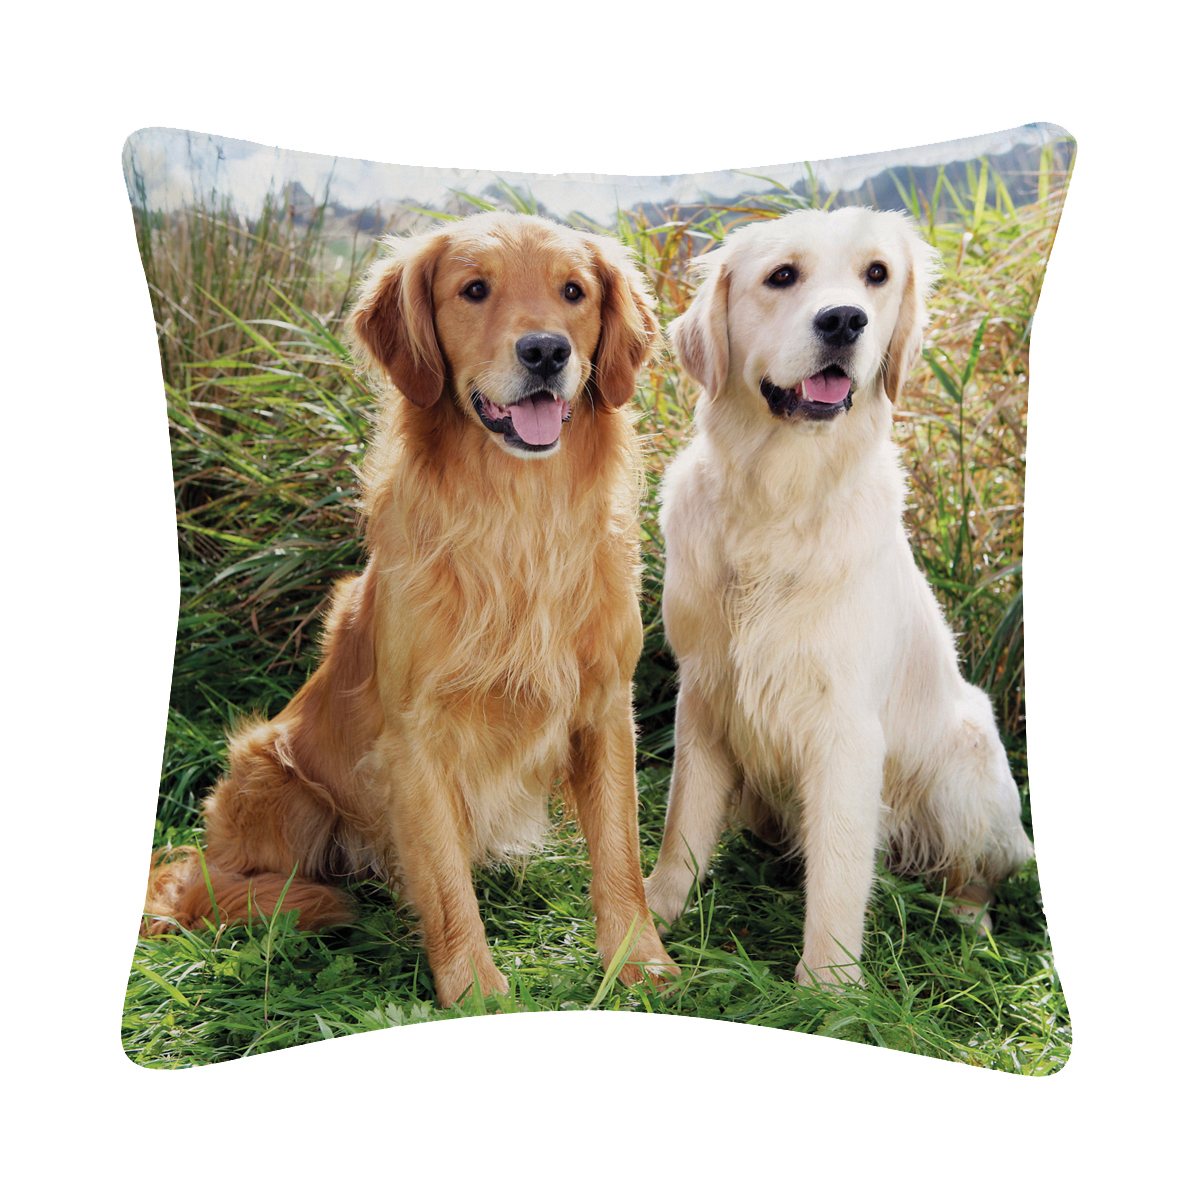 Studio pets - decoratiekussen golden retriever meerkleurig